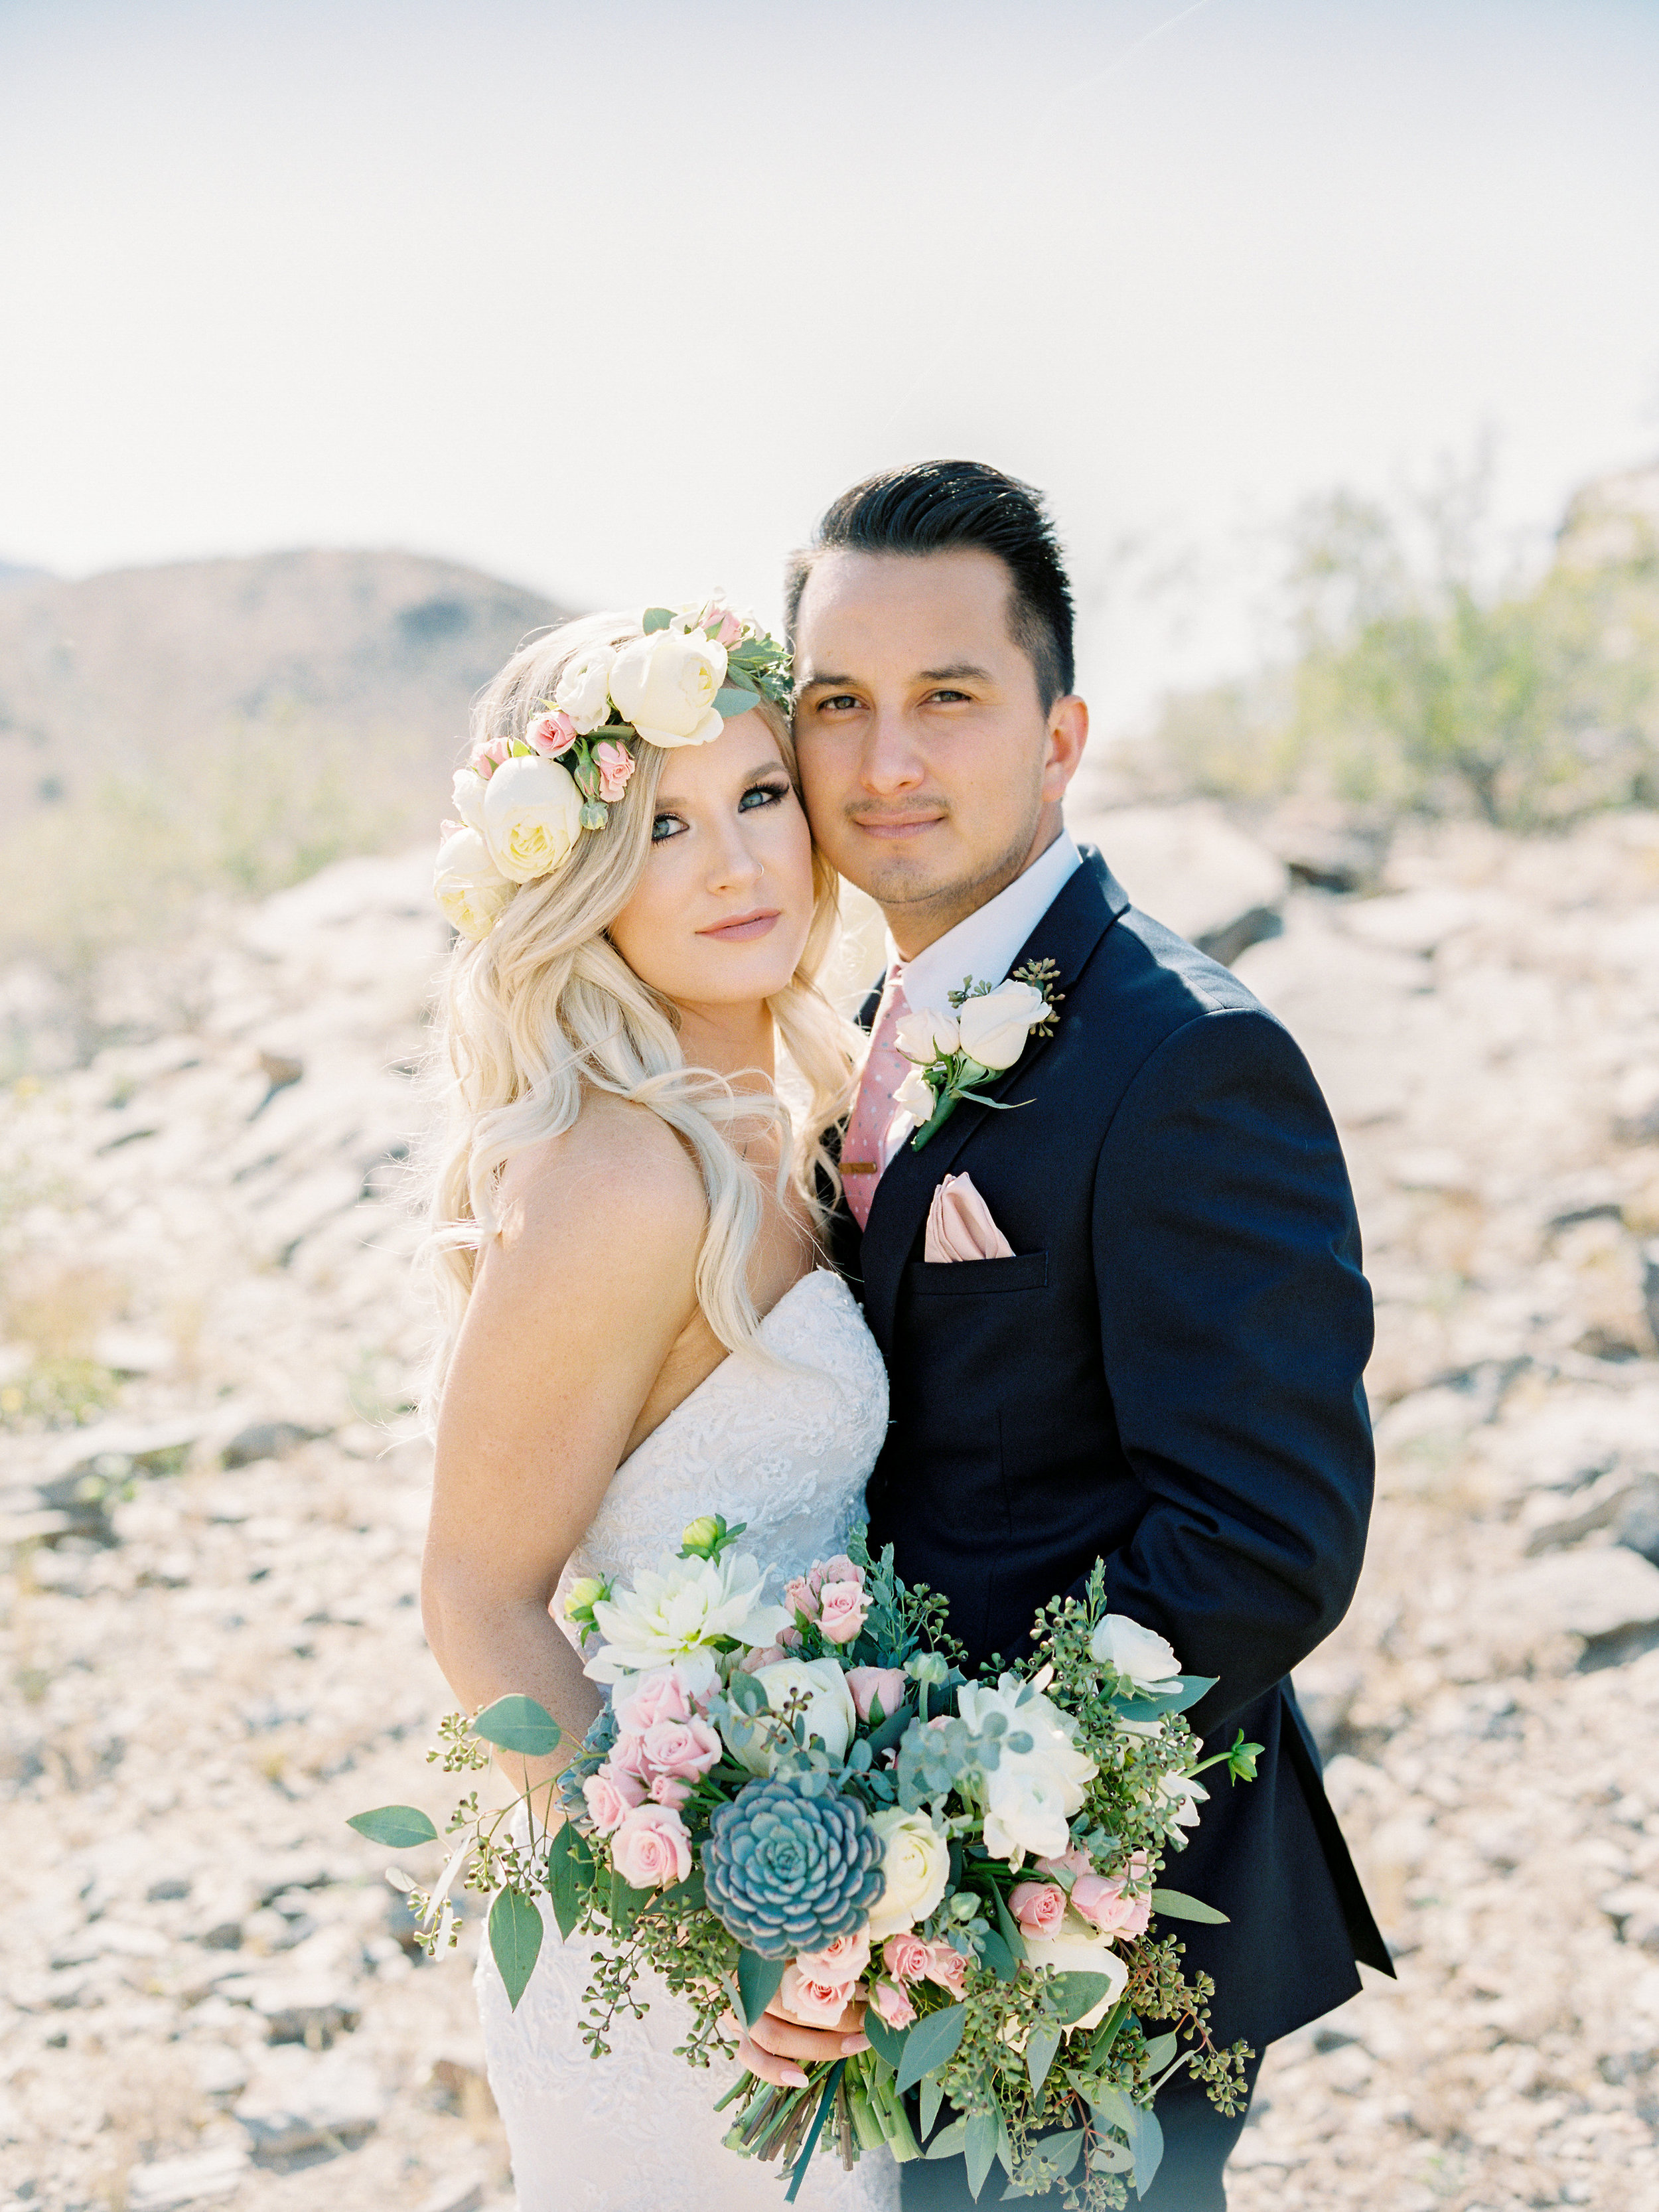 Full Bouquet, Full Crown, and Boutonniere